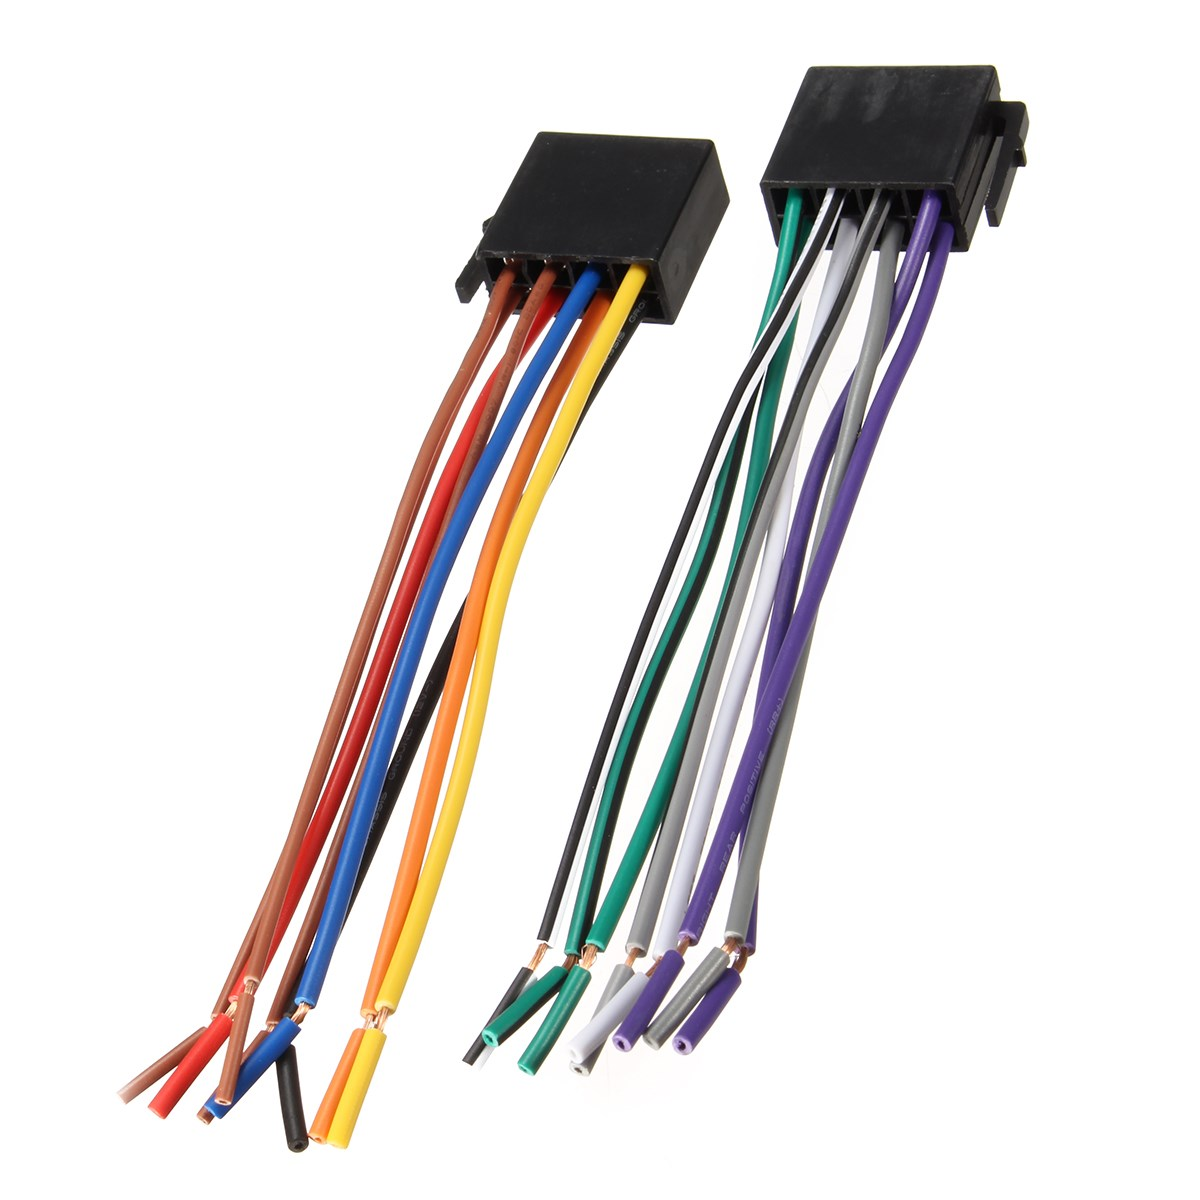 online buy whole car wiring harness from car wiring best promotion universal wire harness adapter connector cable radio wiring connector plug for auto car stereo